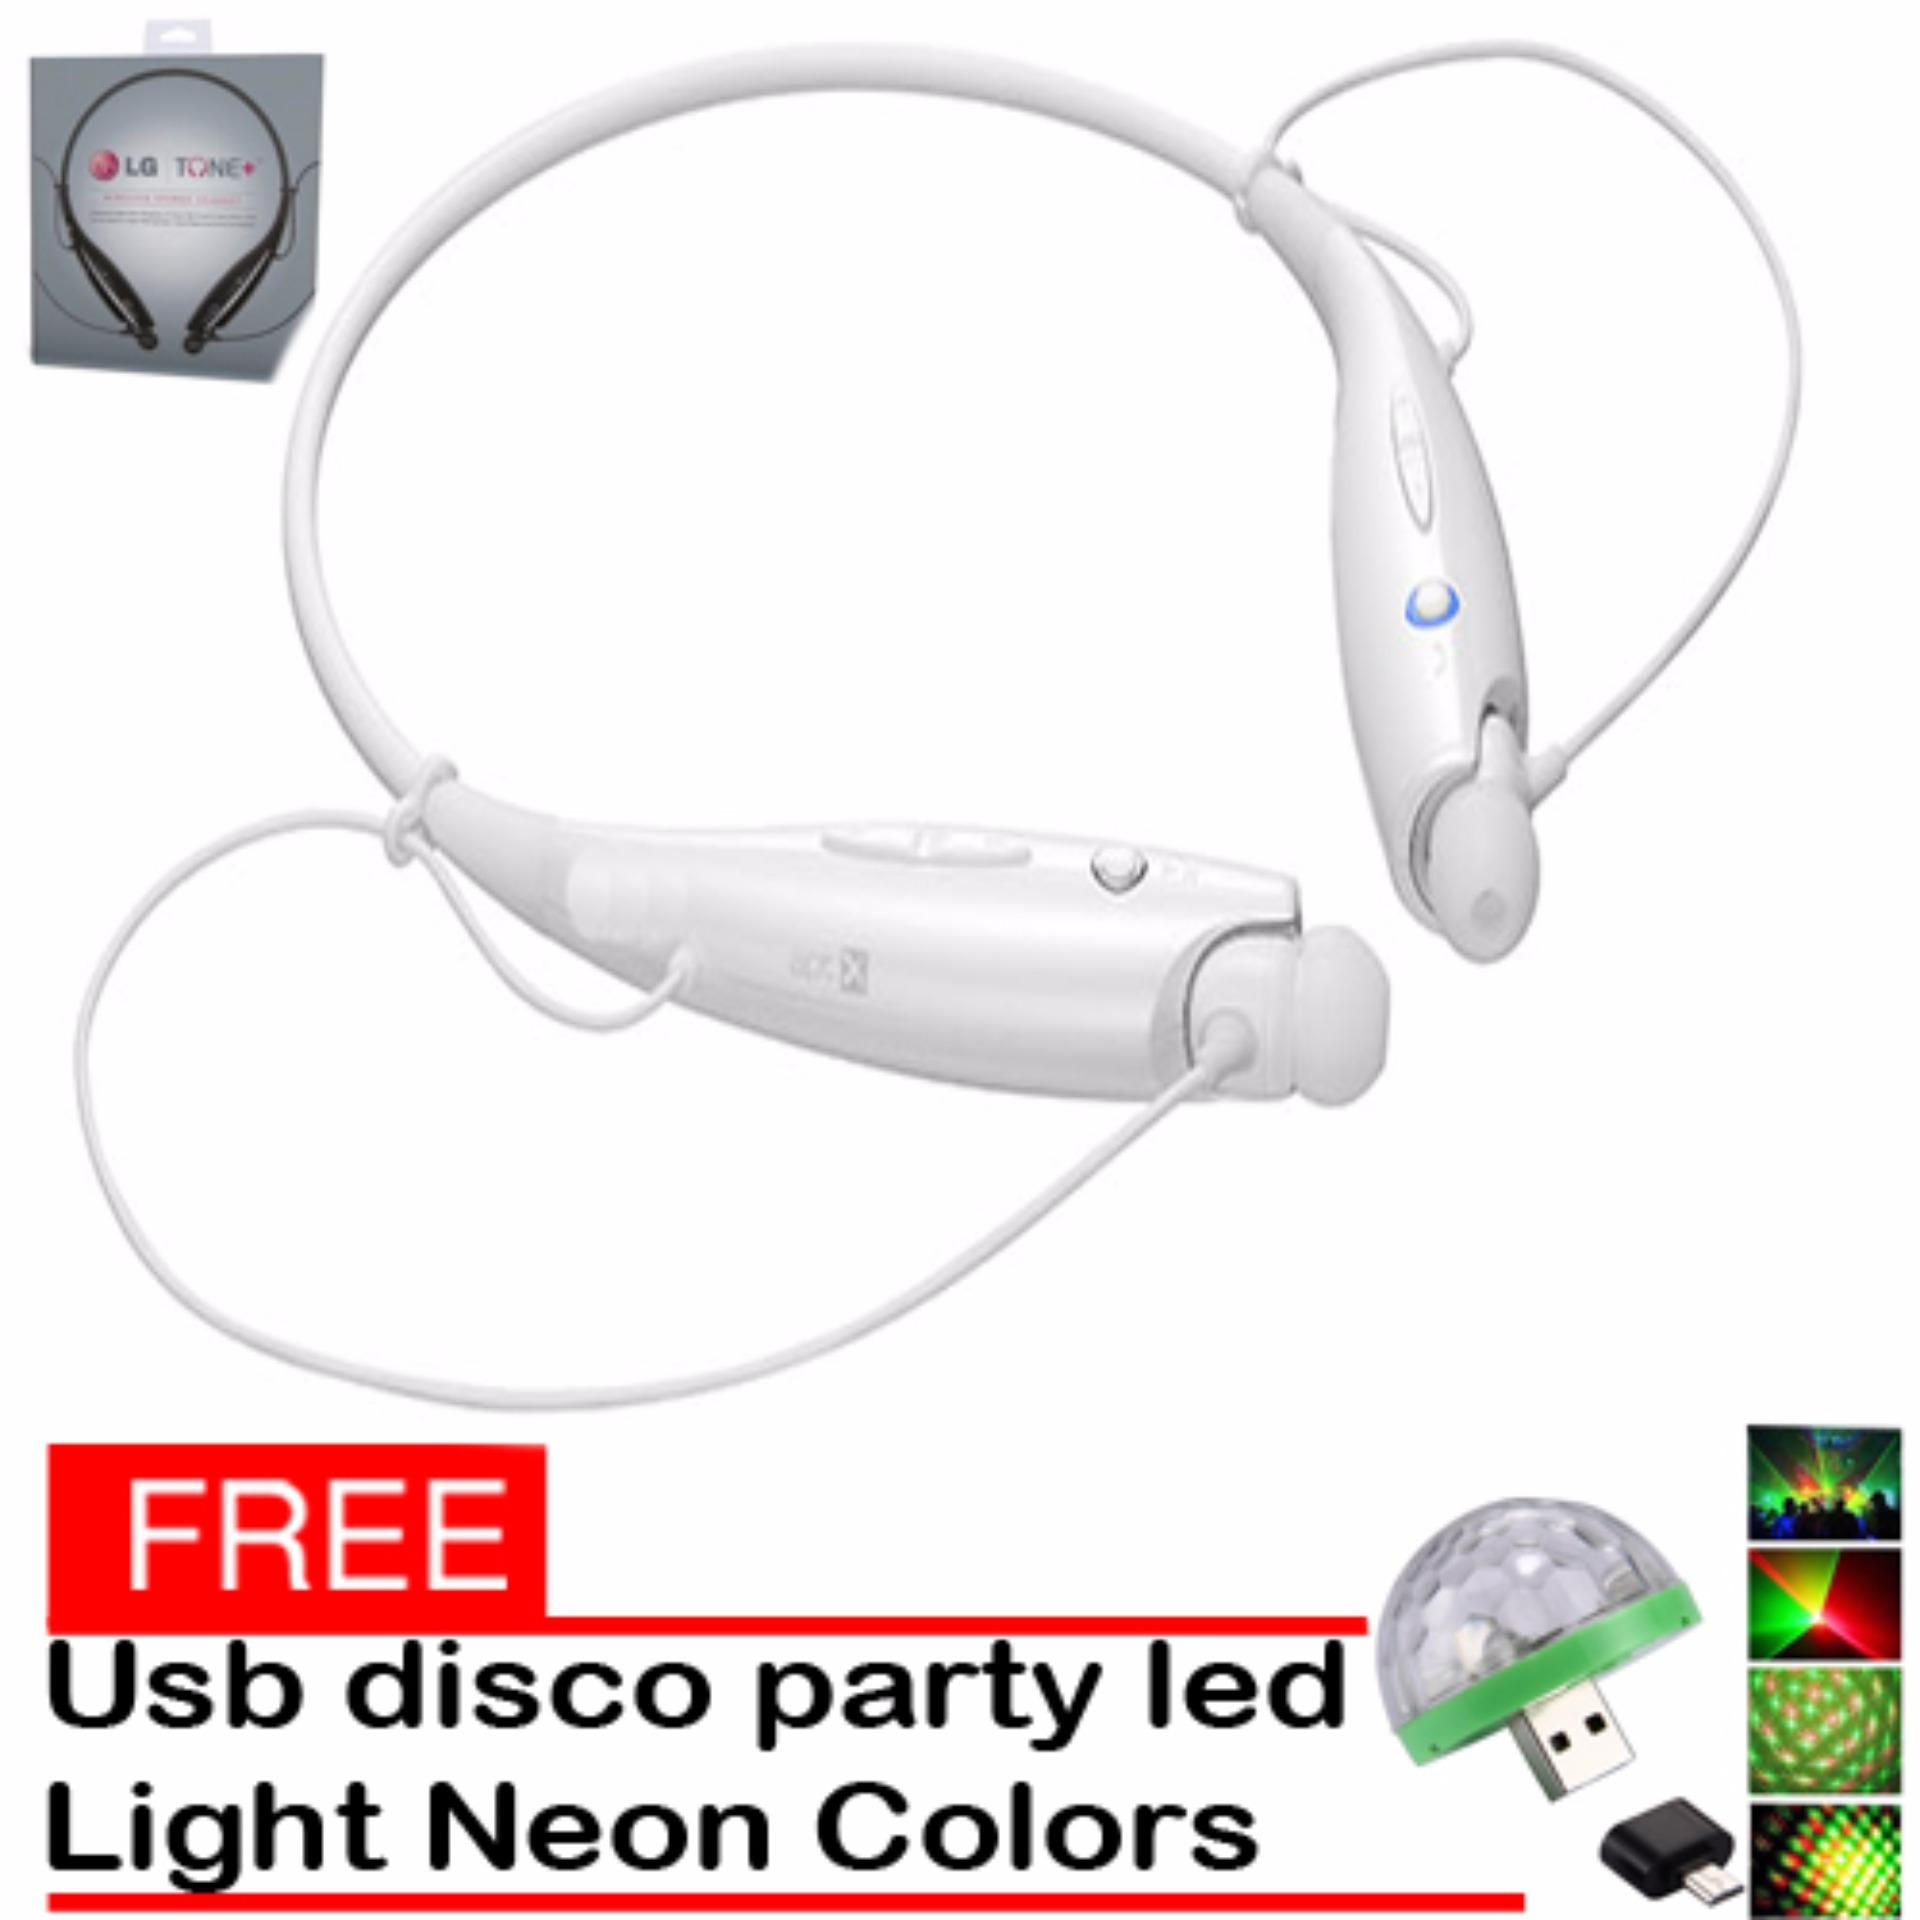 Philippines Lg Hbs 730 Bluetooth Wireless Stereo Headset White Tone With Free Ledsmall Magic Ball